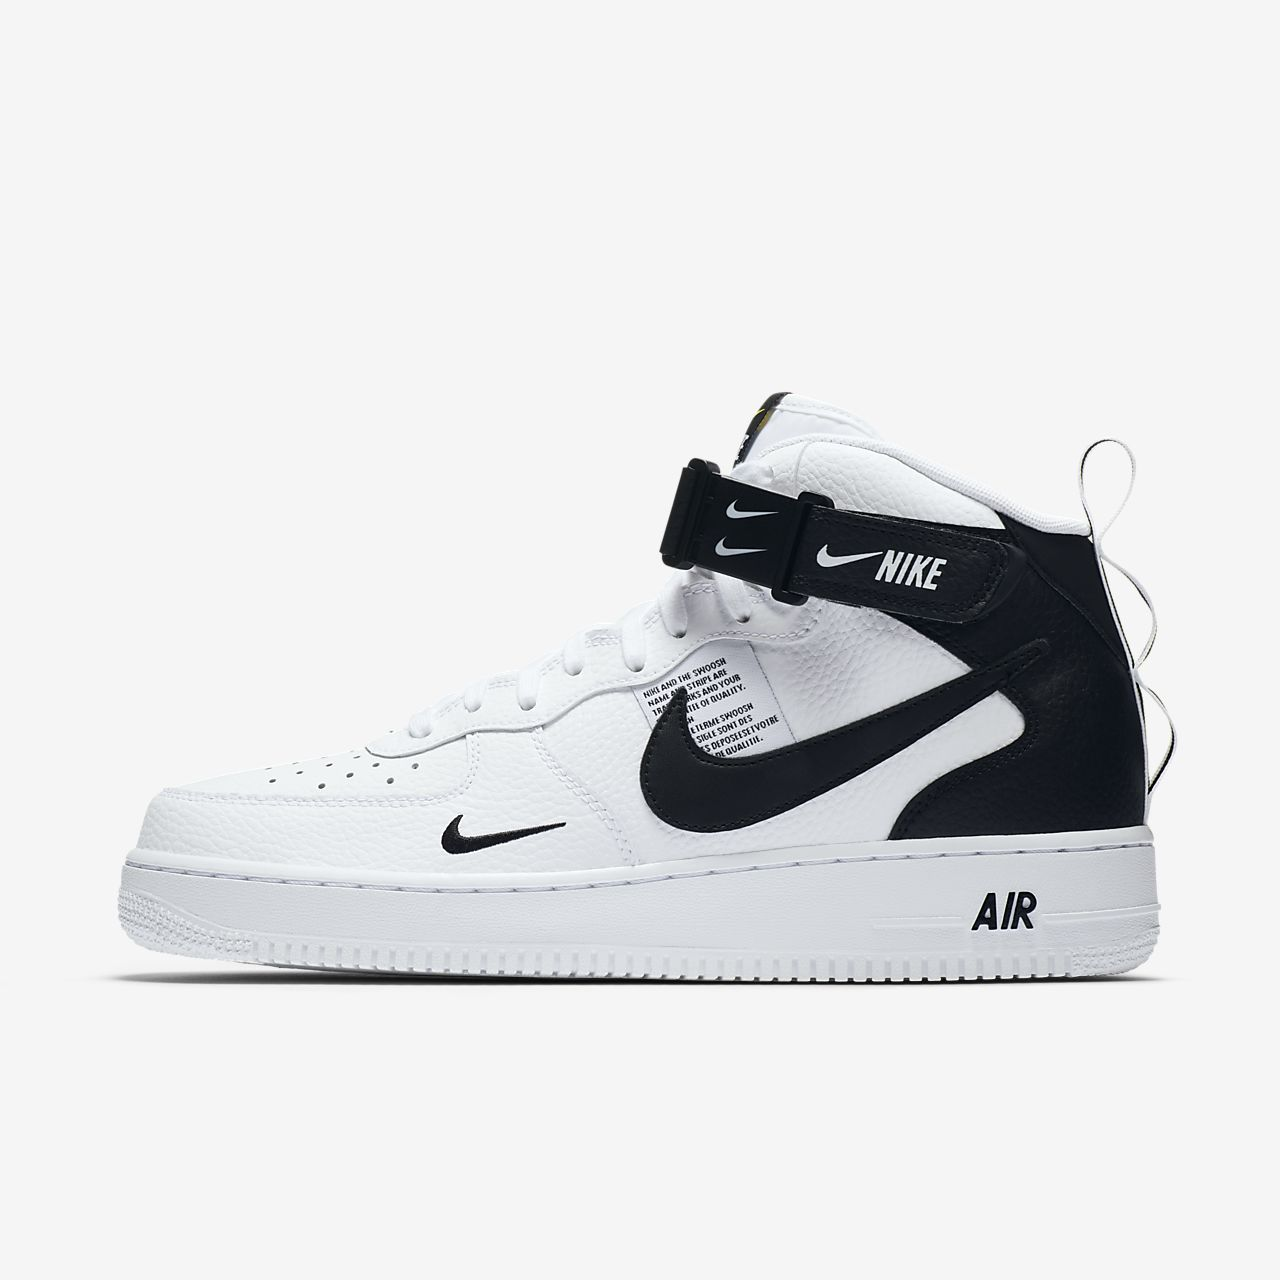 low priced fdb29 fa54b ... Calzado para hombre Nike Air Force 1 07 Mid LV